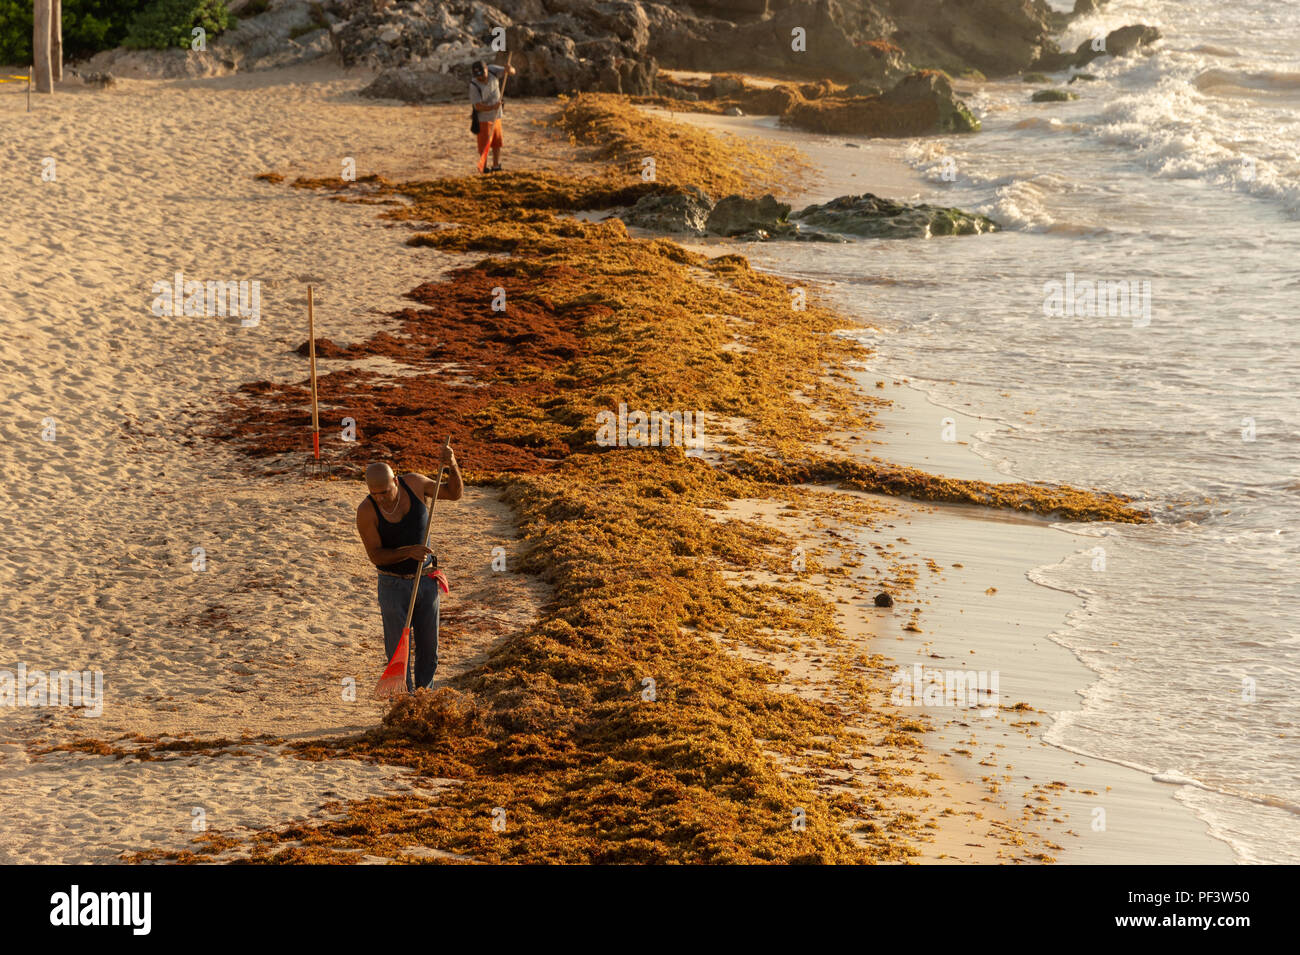 Tulum, Mexico - 7 August 2018: Two men are cleaning Sargassum